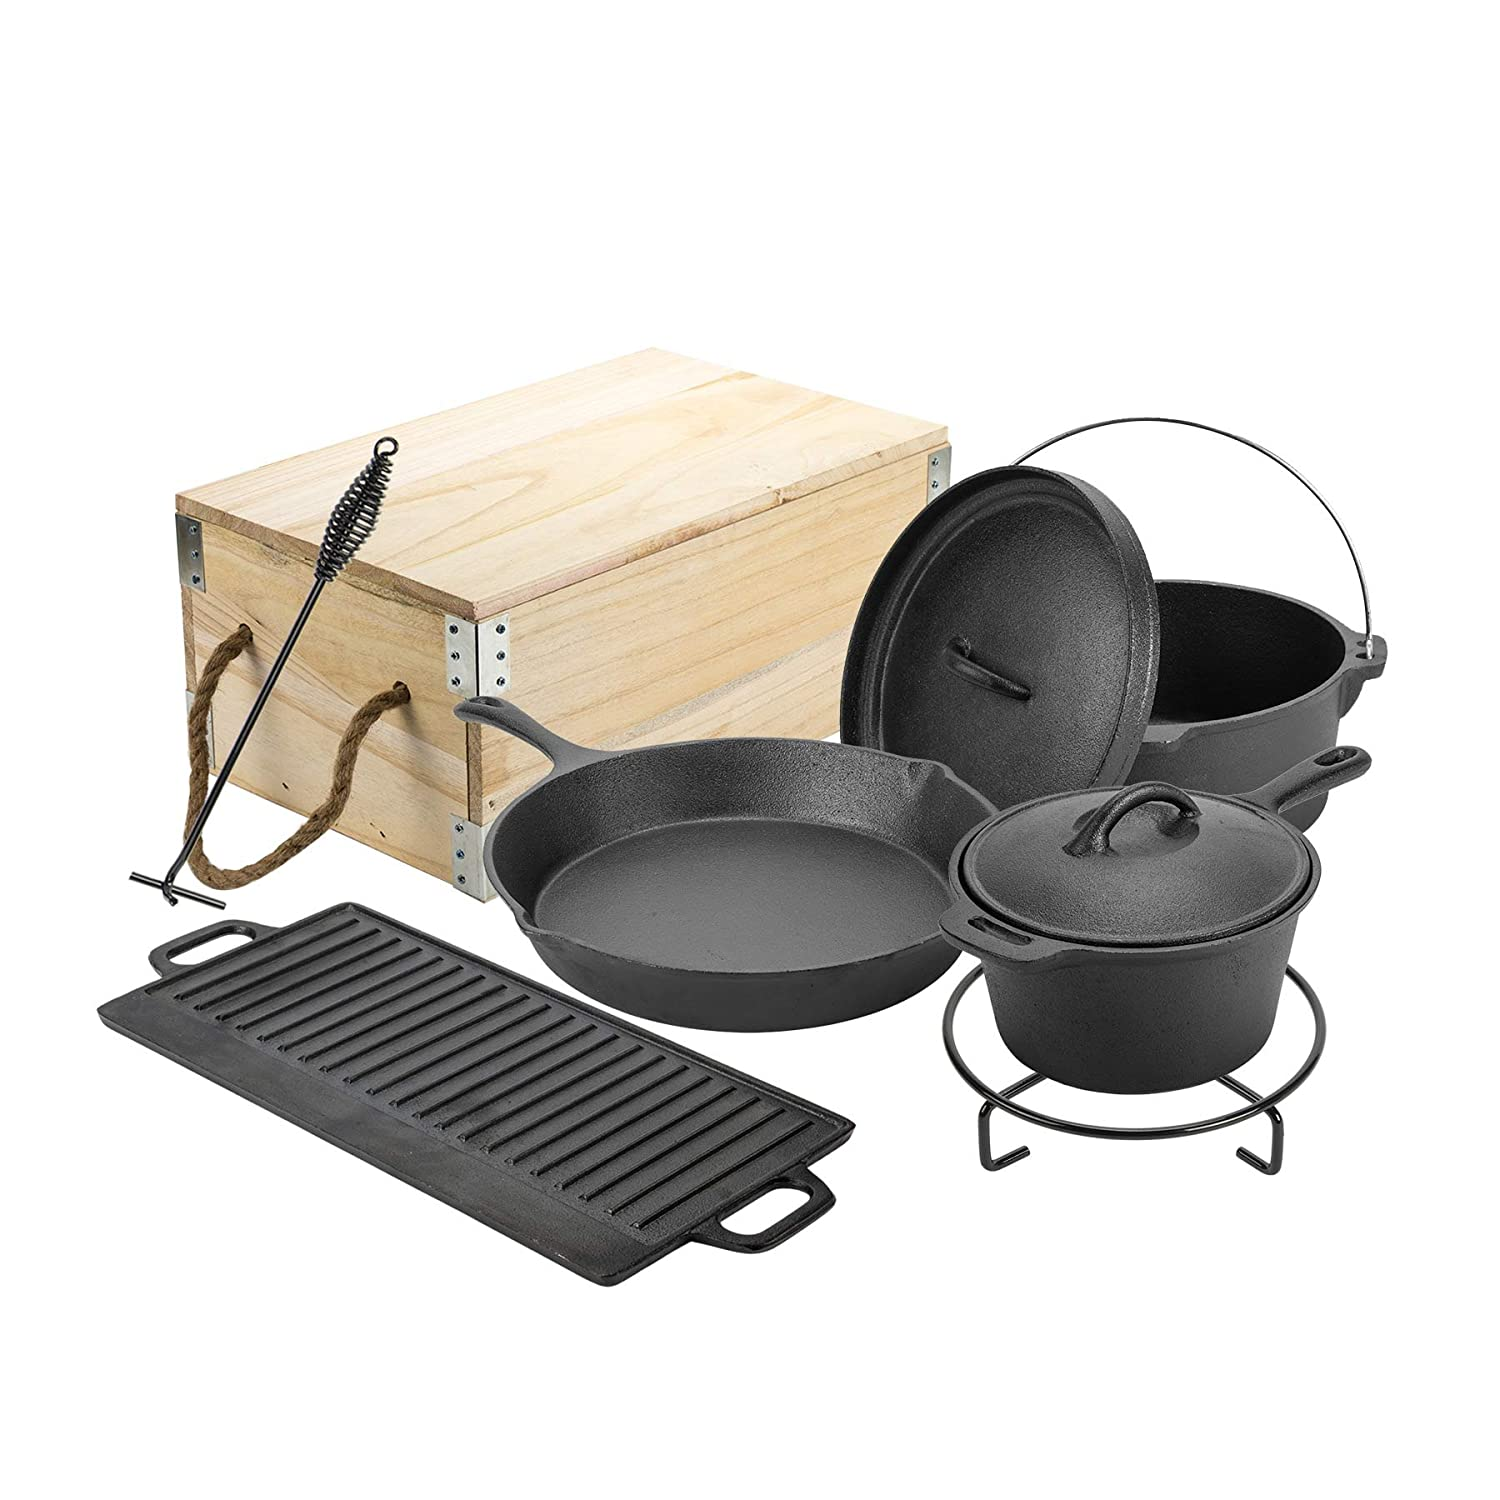 CO-Z Heavy Duty Outdoor Camp Pot Cast Iron Including a Dutch Oven, a Large Skillet, a Sauce Pot, a Griddle, a Trivet and a Lid Lifter